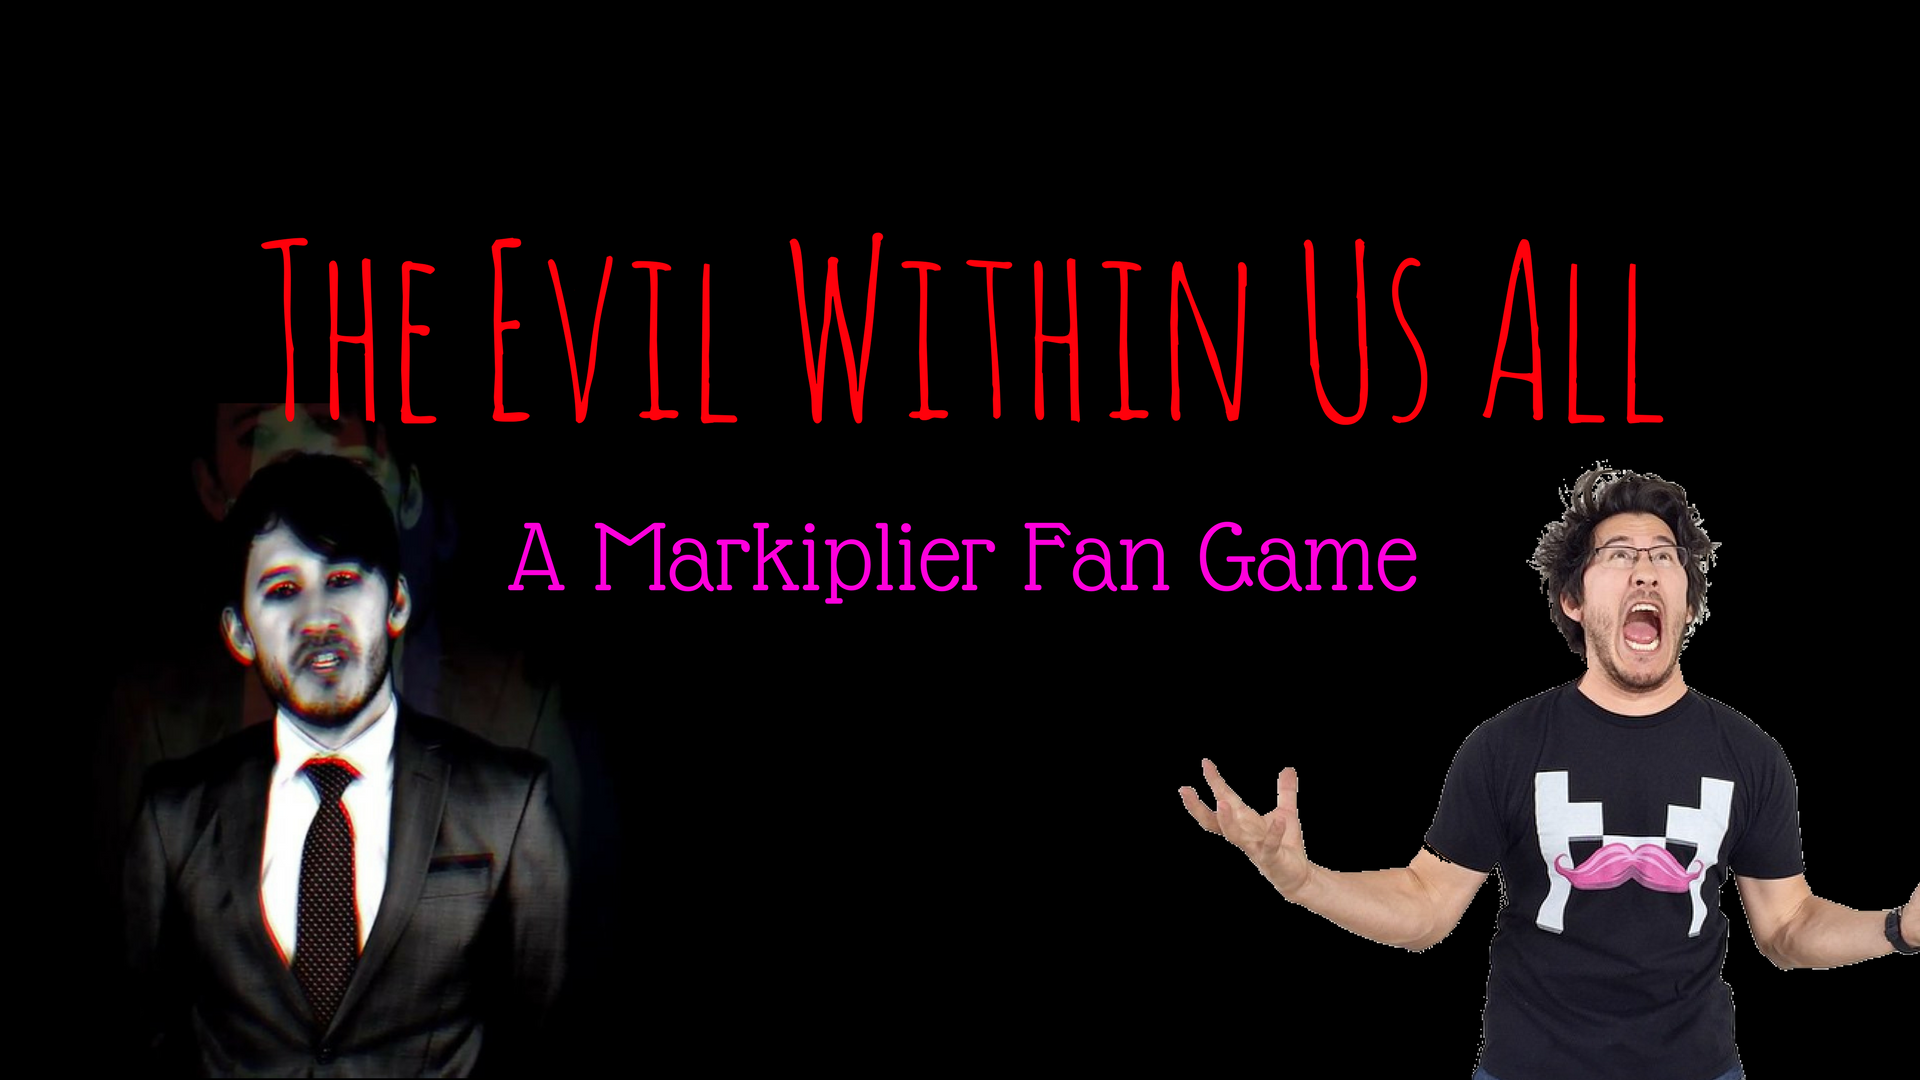 The Evil Within Us All (A Markiplier Fan Game)